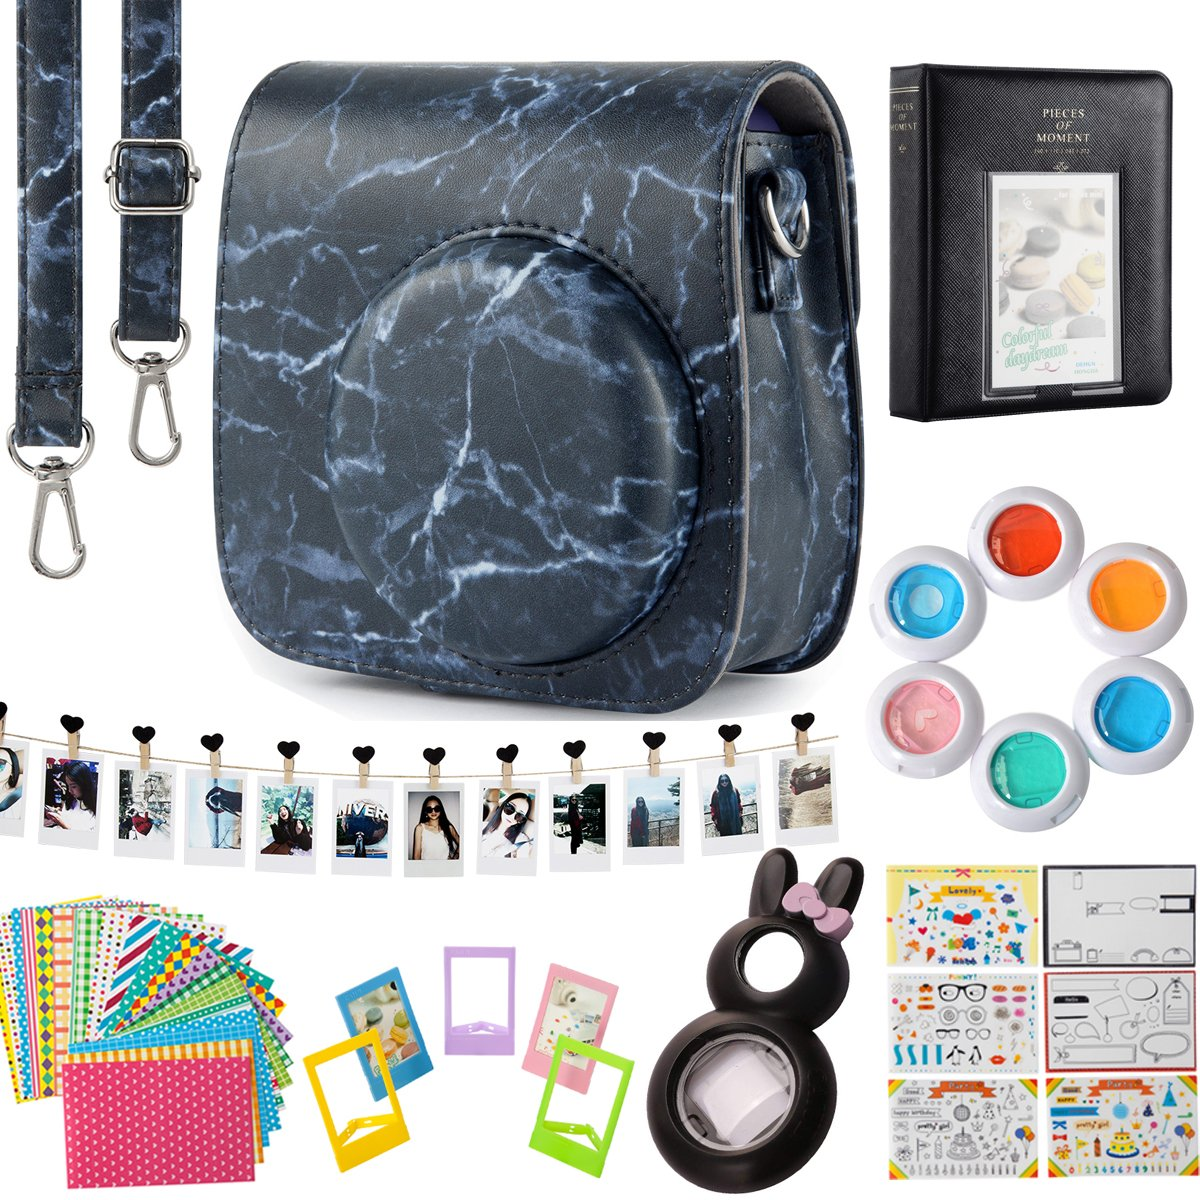 Flylther Compatible Mini 8 9 Camera 8-in-1 Accessories Bundles Set for Fujifilm Instax Mini 8 9 Instant Film Camera(Case,Albums,Frames,Film Stickers,Colored Filters,Selfie Lens) - Marbling